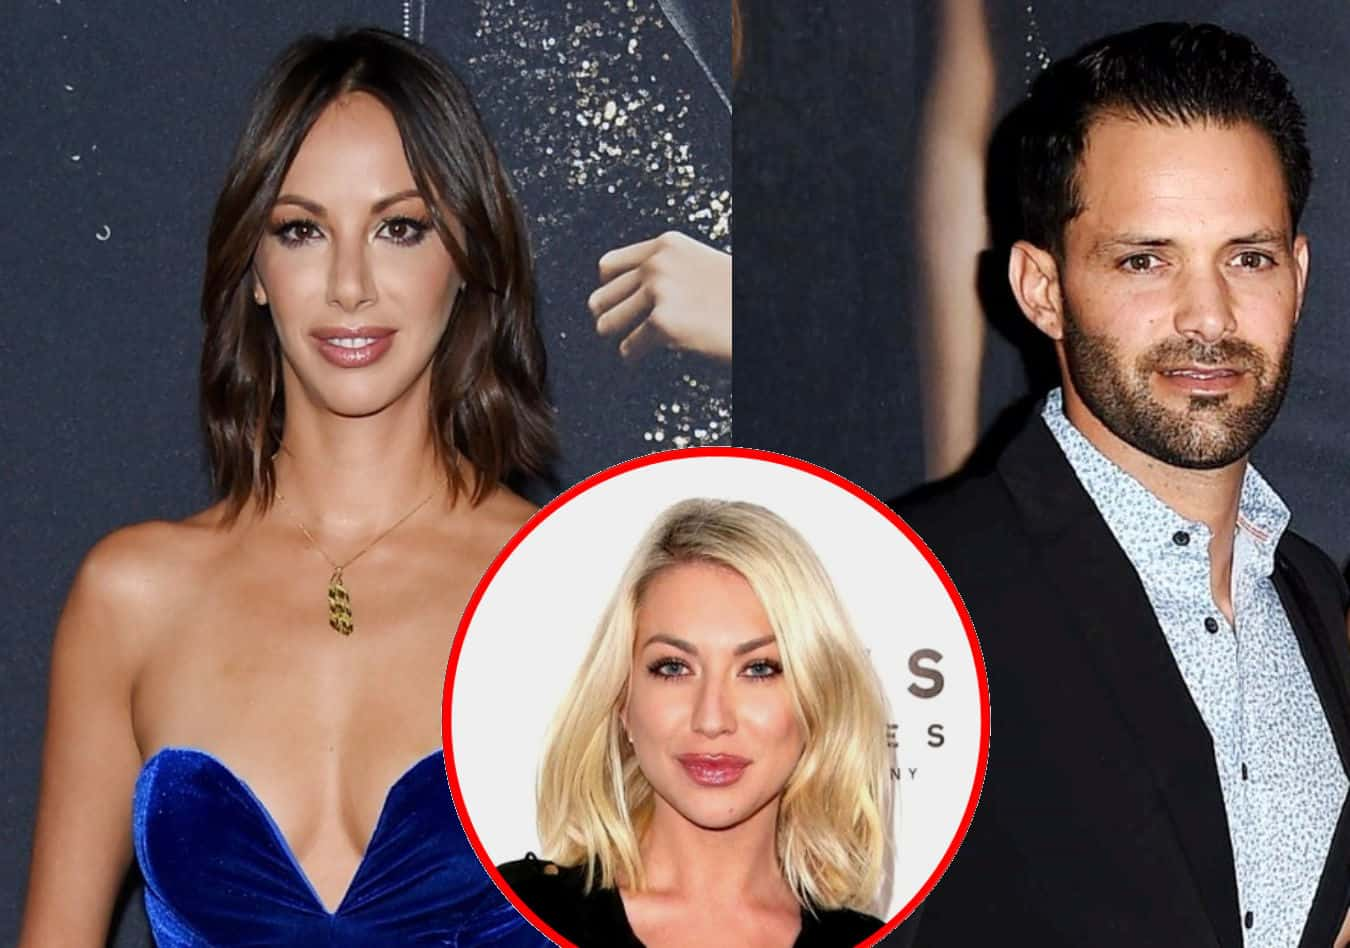 Vanderpump Rules' Kristen Doute Reveals the Real Reason She Keeps Going Back to Brian Carter, Plus She Shades Stassi and Thinks She Ditched Her Because She's Single